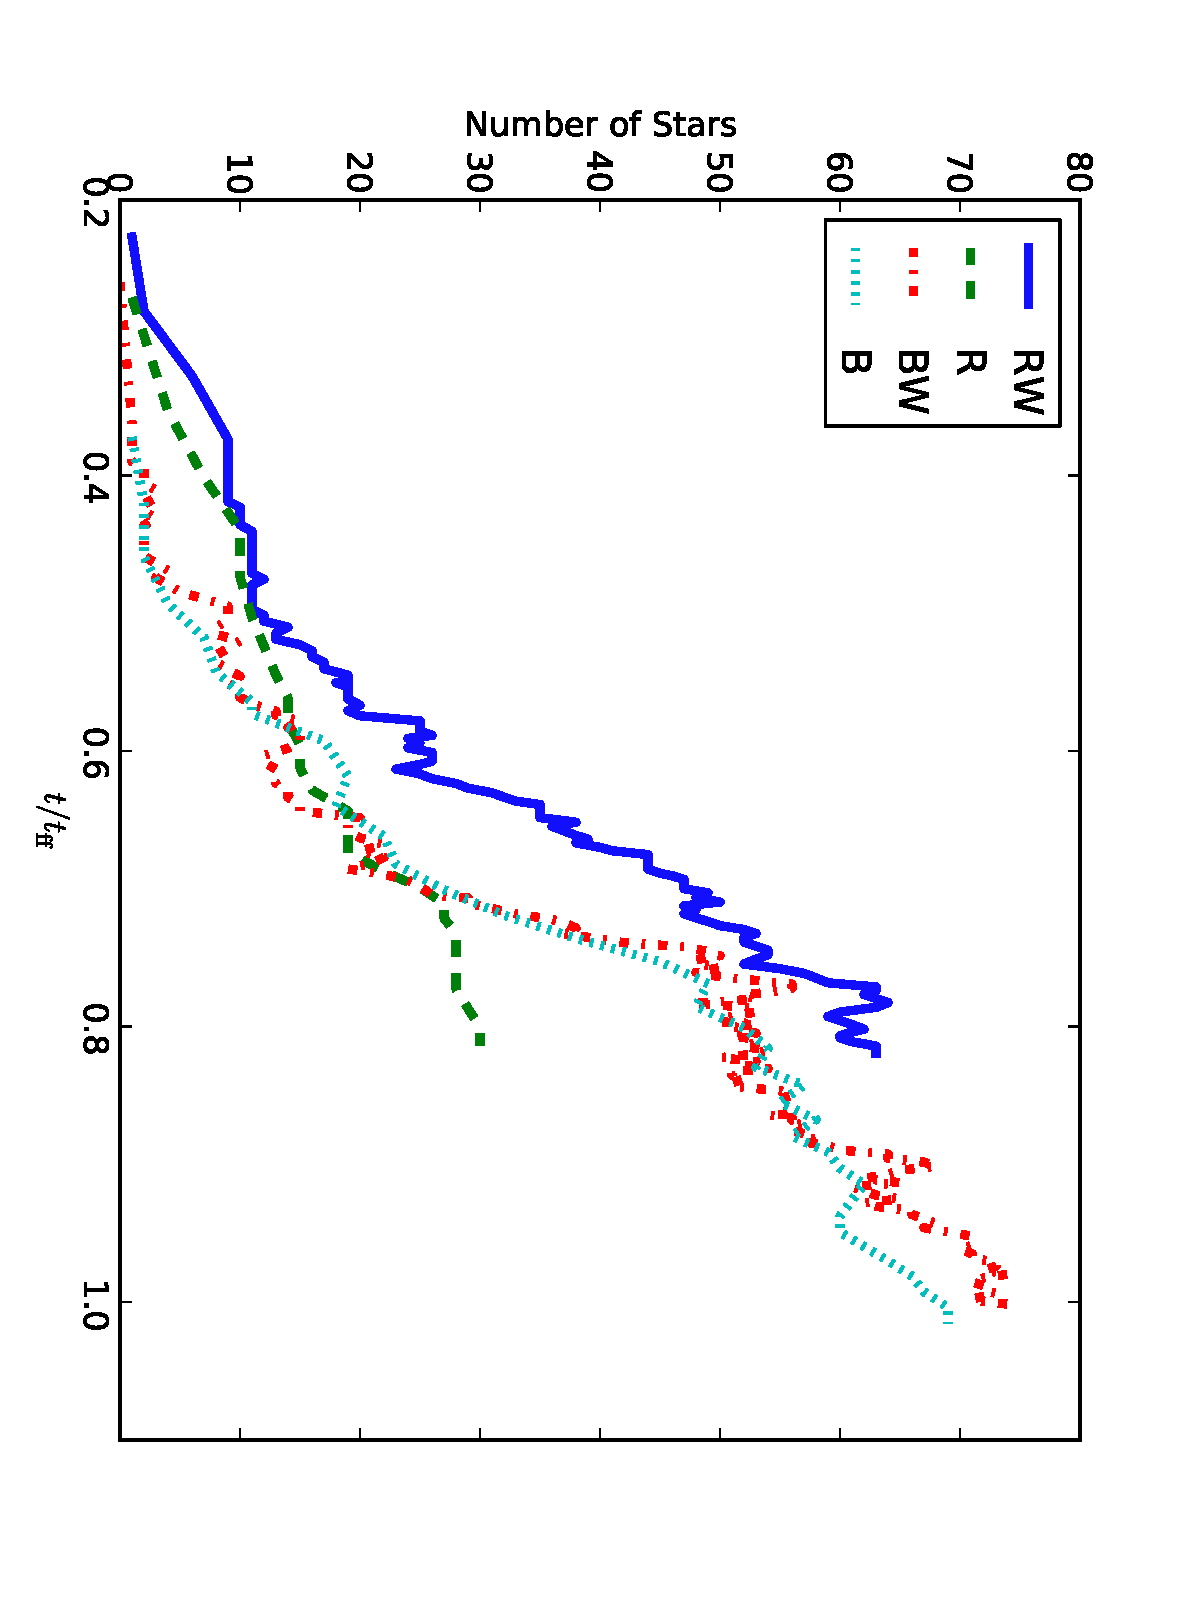 Number of stars as a function of time for the four simulations. In the barotropic case, the number of stars is unaffected by winds. In the radiative case, radiation suppresses the number of stars unless winds are present.